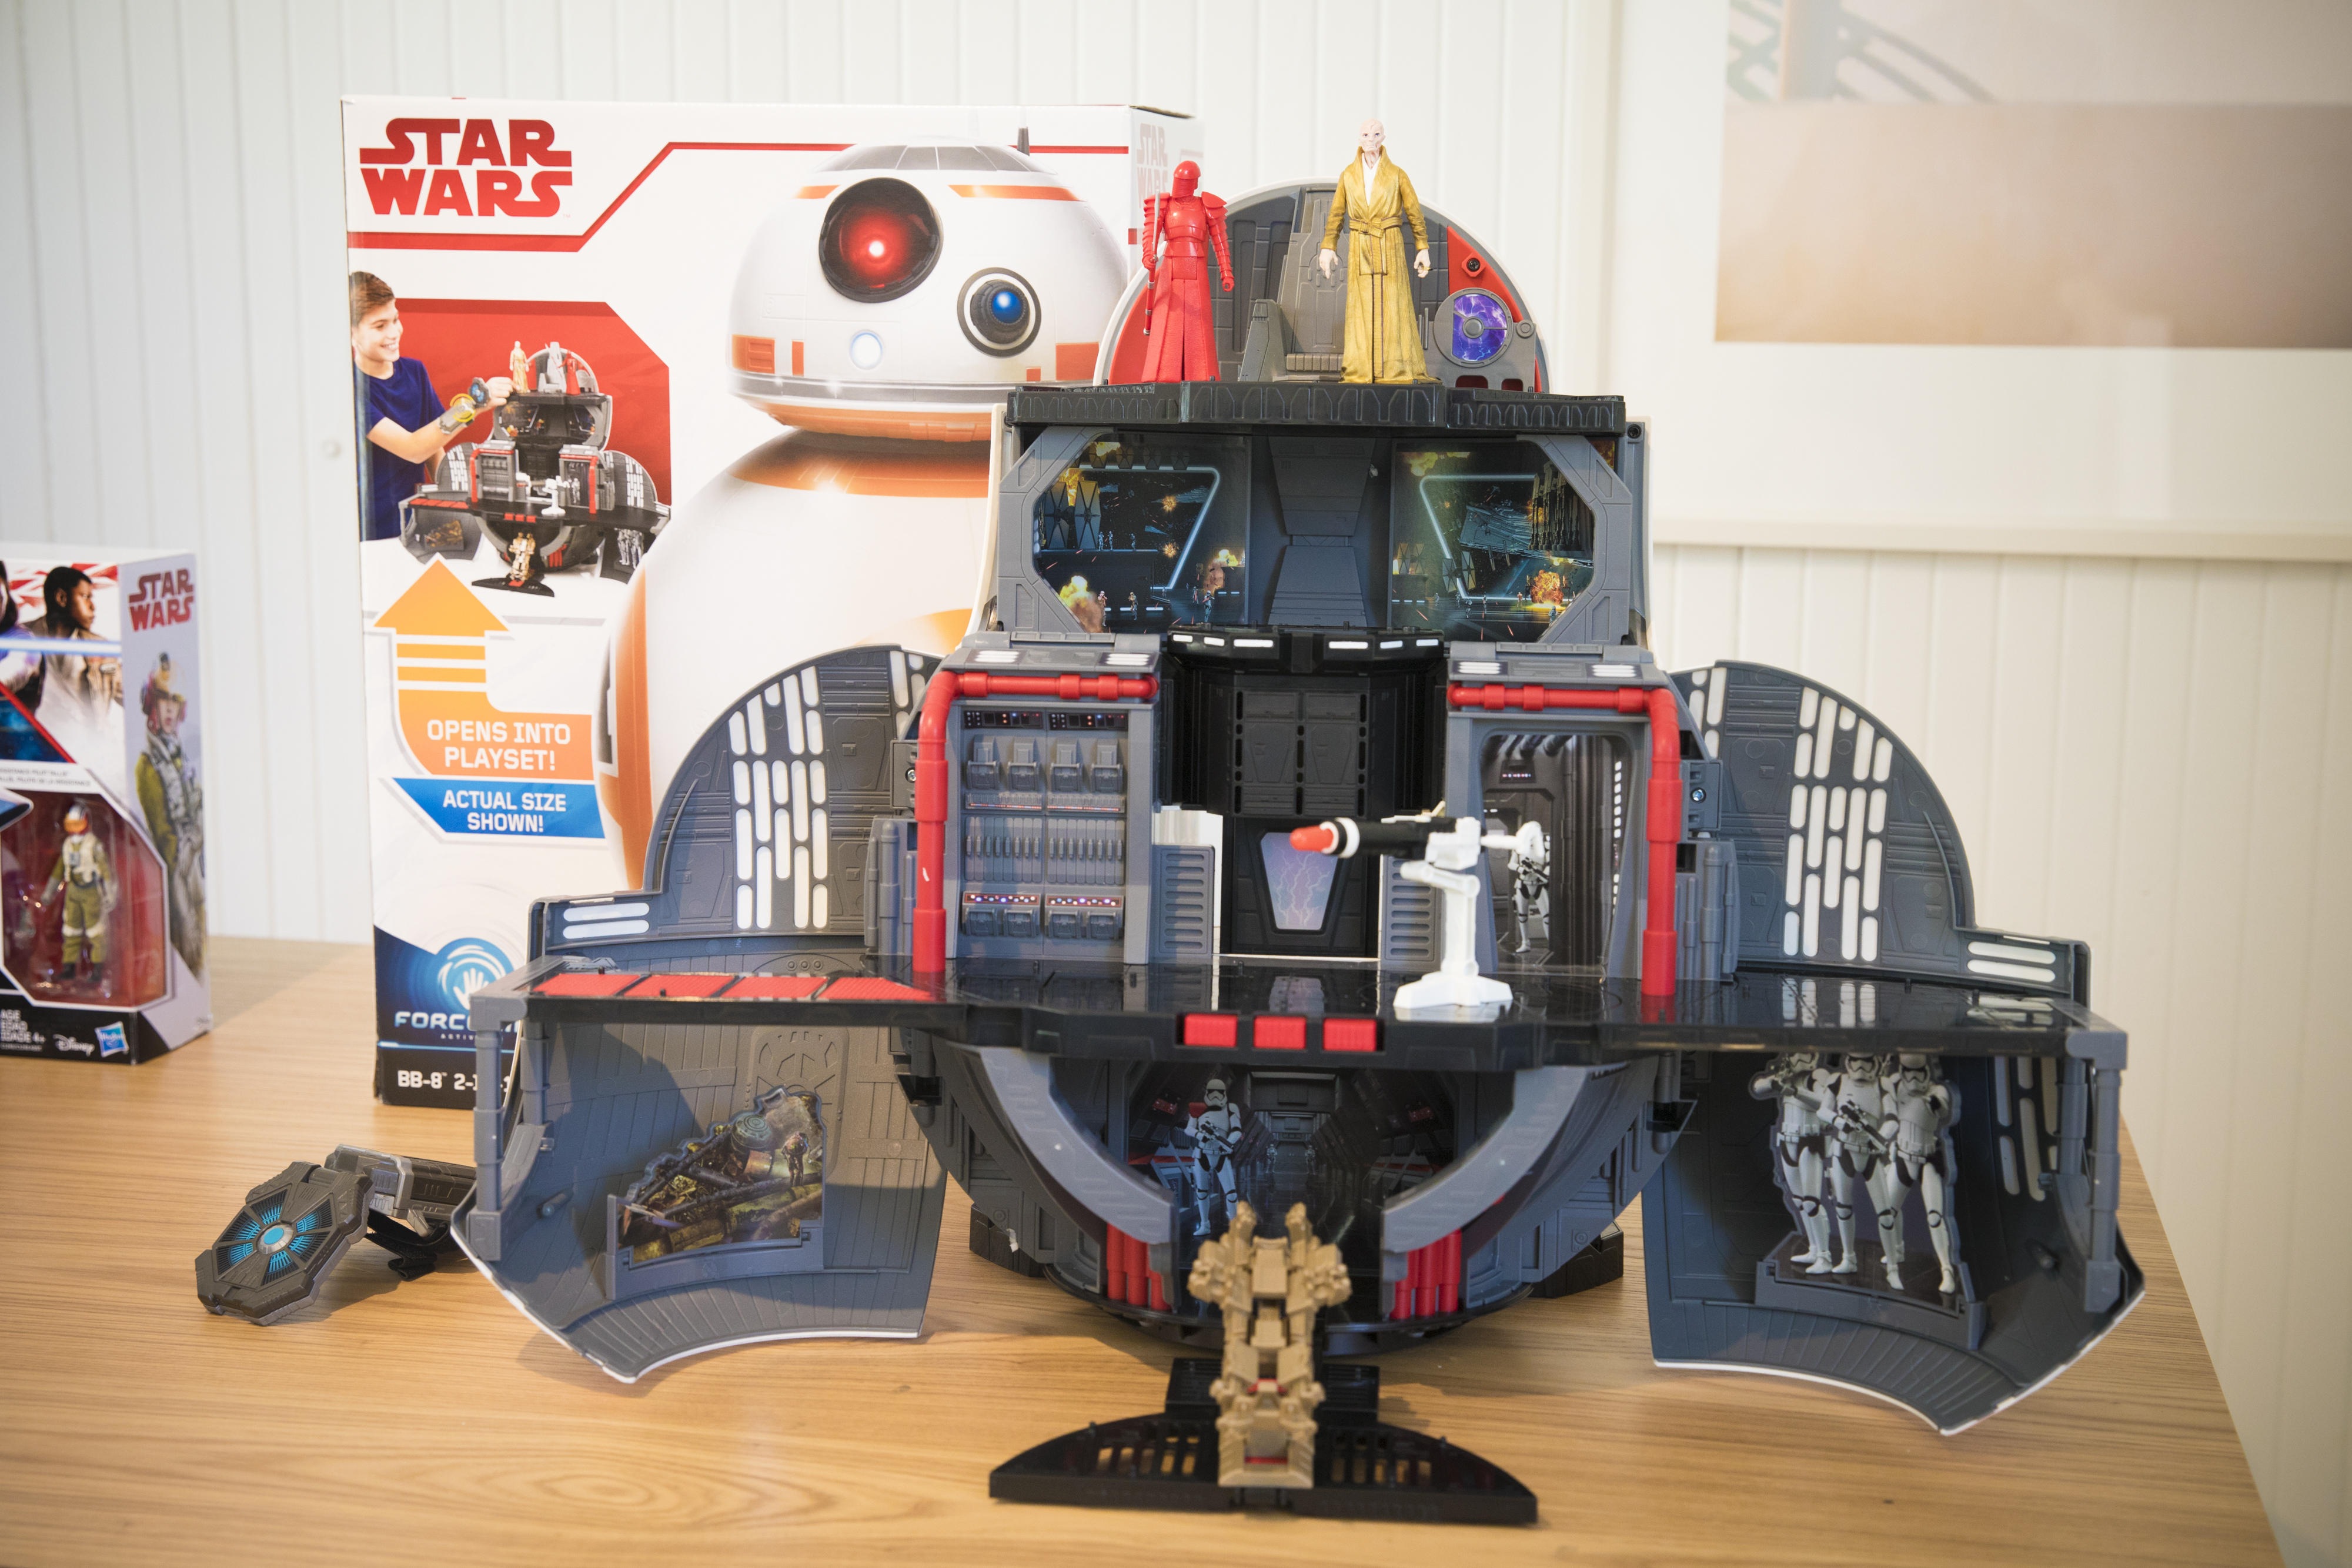 The ultimate Star Wars playset